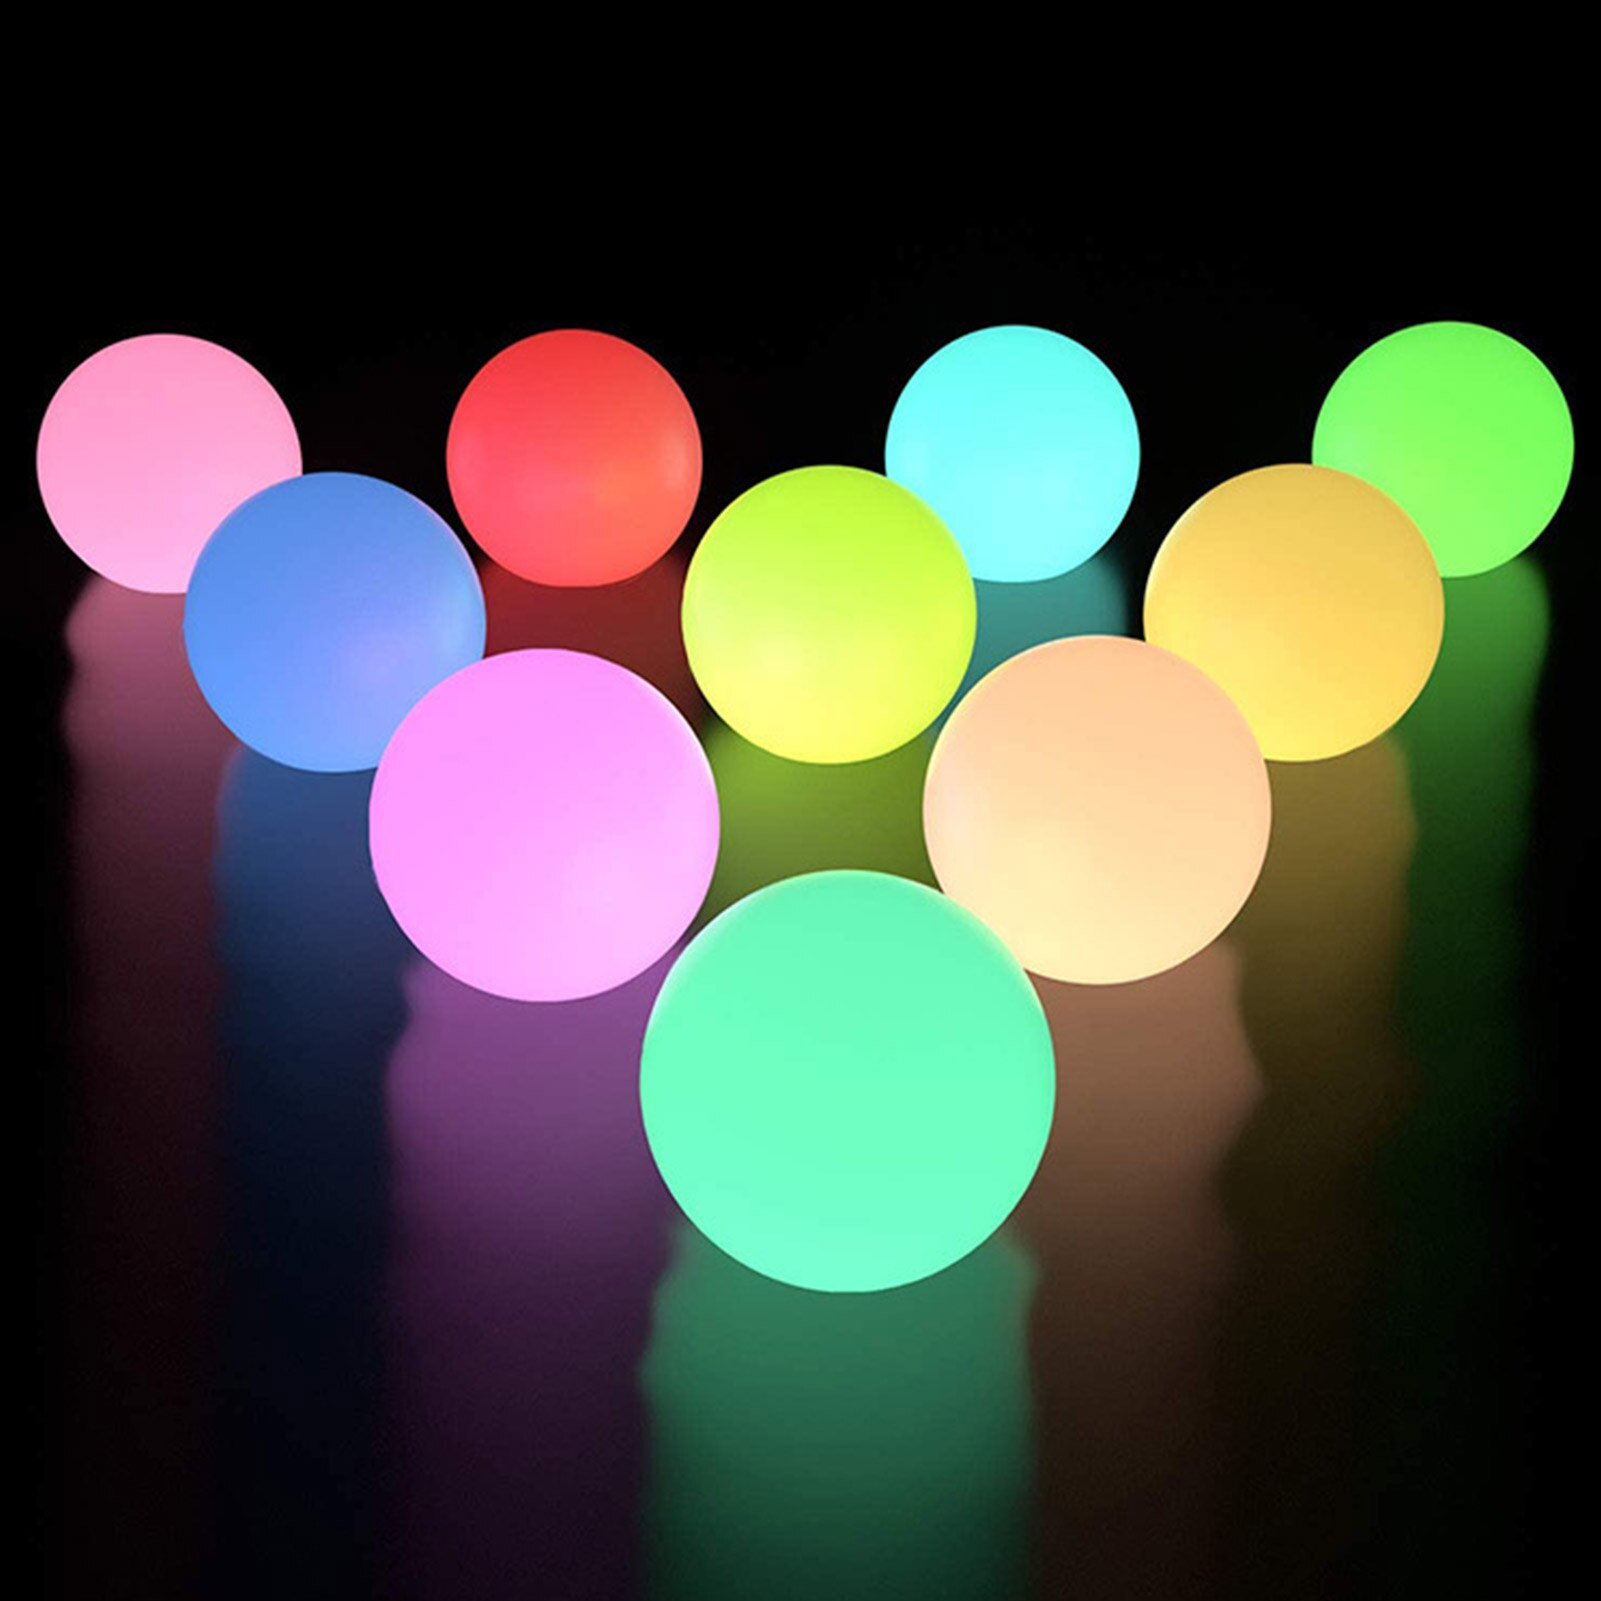 thrisdar 16 color ip68 globe ball garden landscape lawn pathway deck light remote control led swimming pool floating ball light Waterproof LED Garden Ball Light Outdoor Lawn Lamps Rechargeable Christmas Party RGB Landscape Swimming Pool Floating Lights